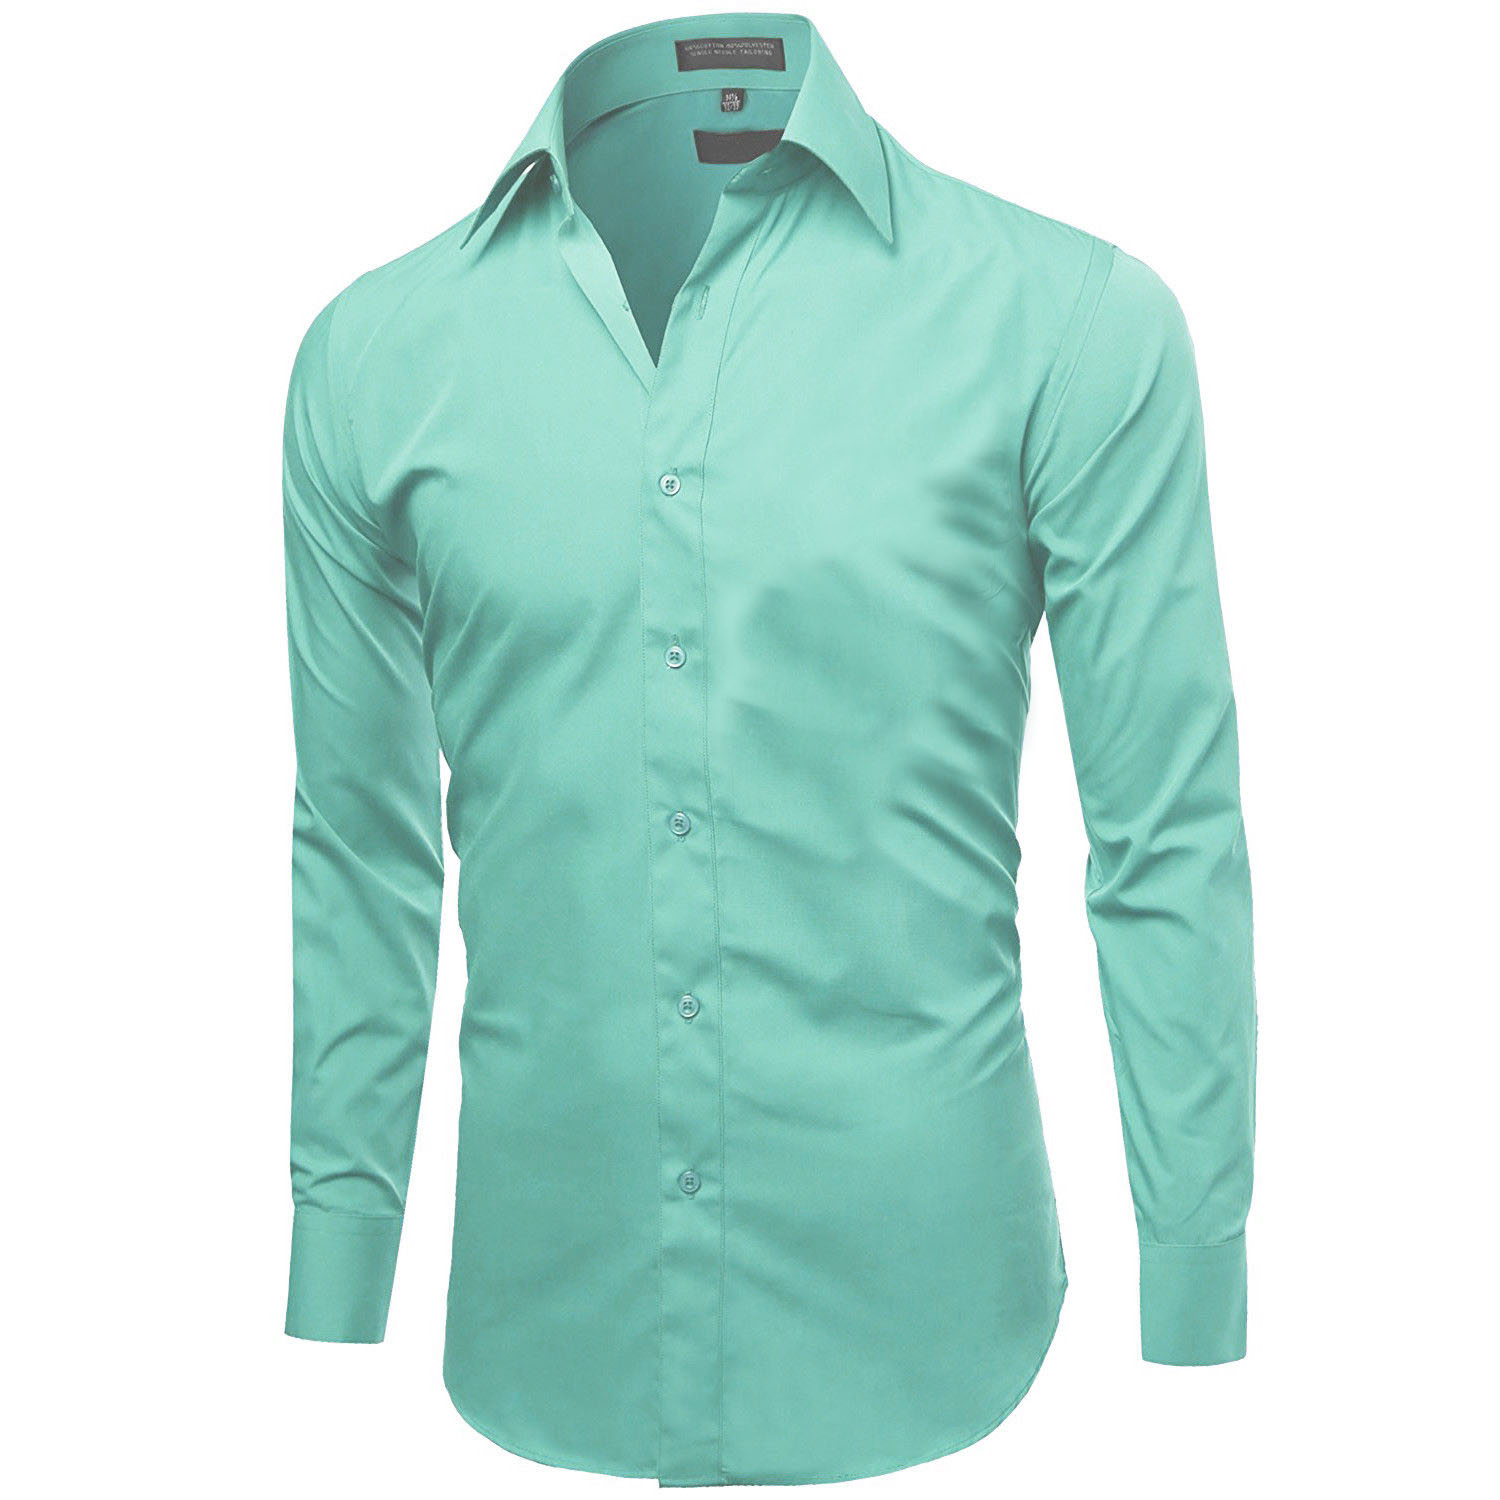 Omega-Italy-Men-039-s-Premium-Slim-Fit-Button-Up-Long-Sleeve-Solid-Color-Dress-Shirt thumbnail 8